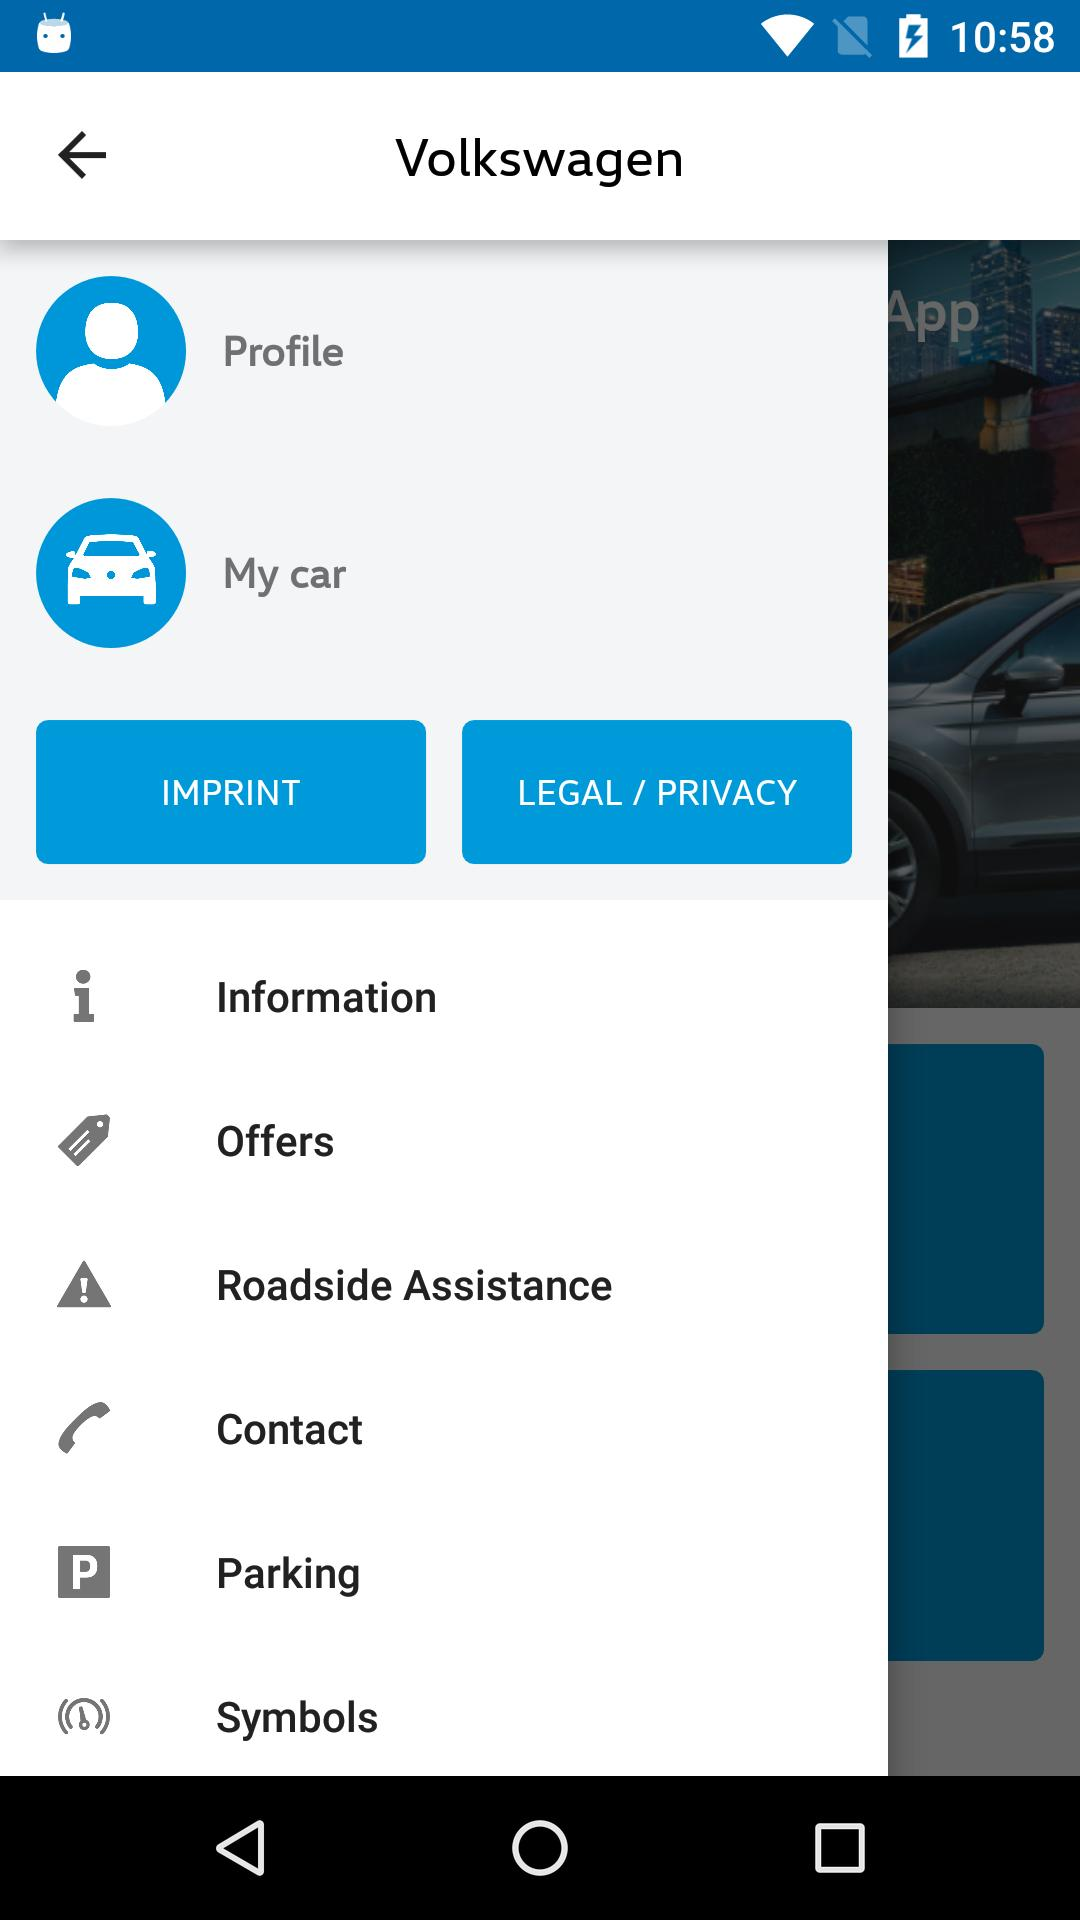 Volkswagen Service Oman for Android - APK Download